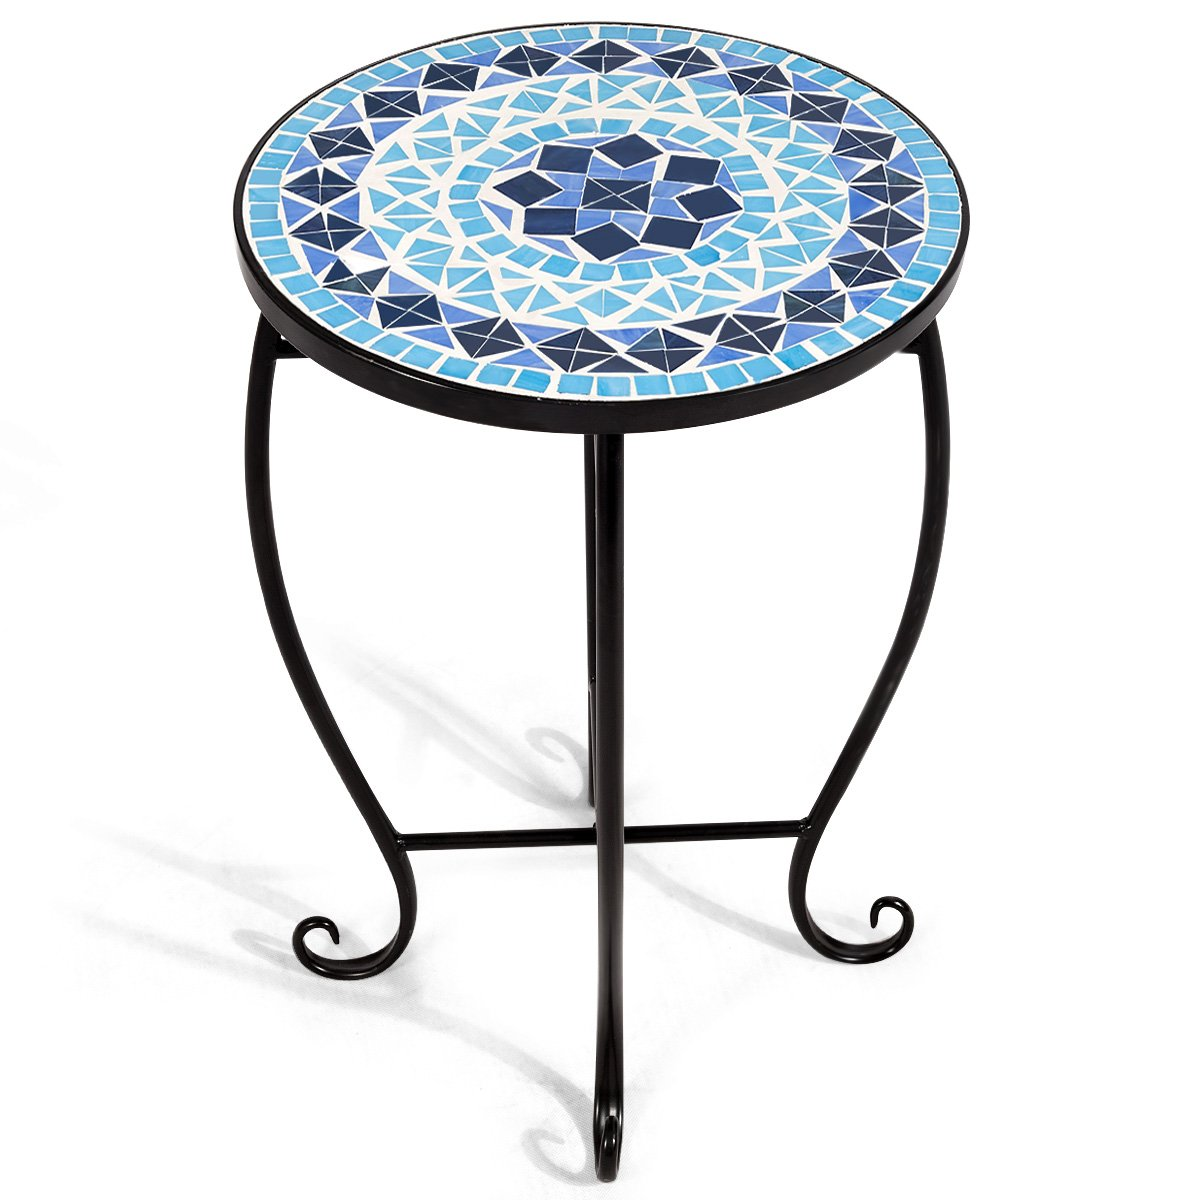 giantex mosaic round side accent table patio plant indoor stand porch beach theme balcony back deck pool decor metal cobalt glass top outdoor square umbrella grey coffee circular